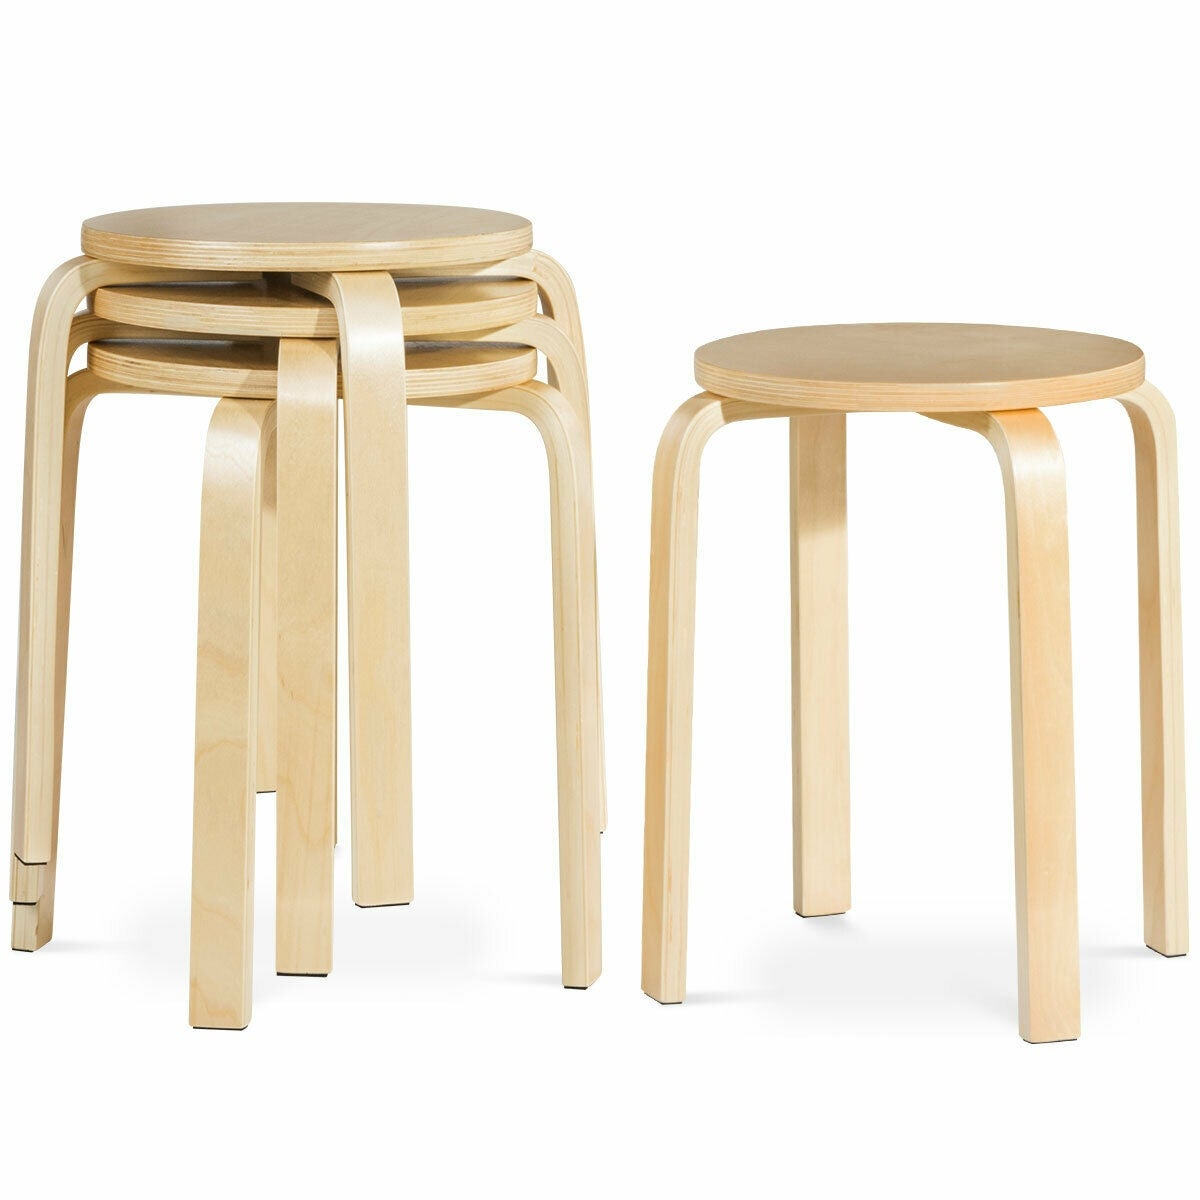 Prime Set Of 4 18 Stacking Stool Round Dining Chair Backless Wood Home Decor Unemploymentrelief Wooden Chair Designs For Living Room Unemploymentrelieforg